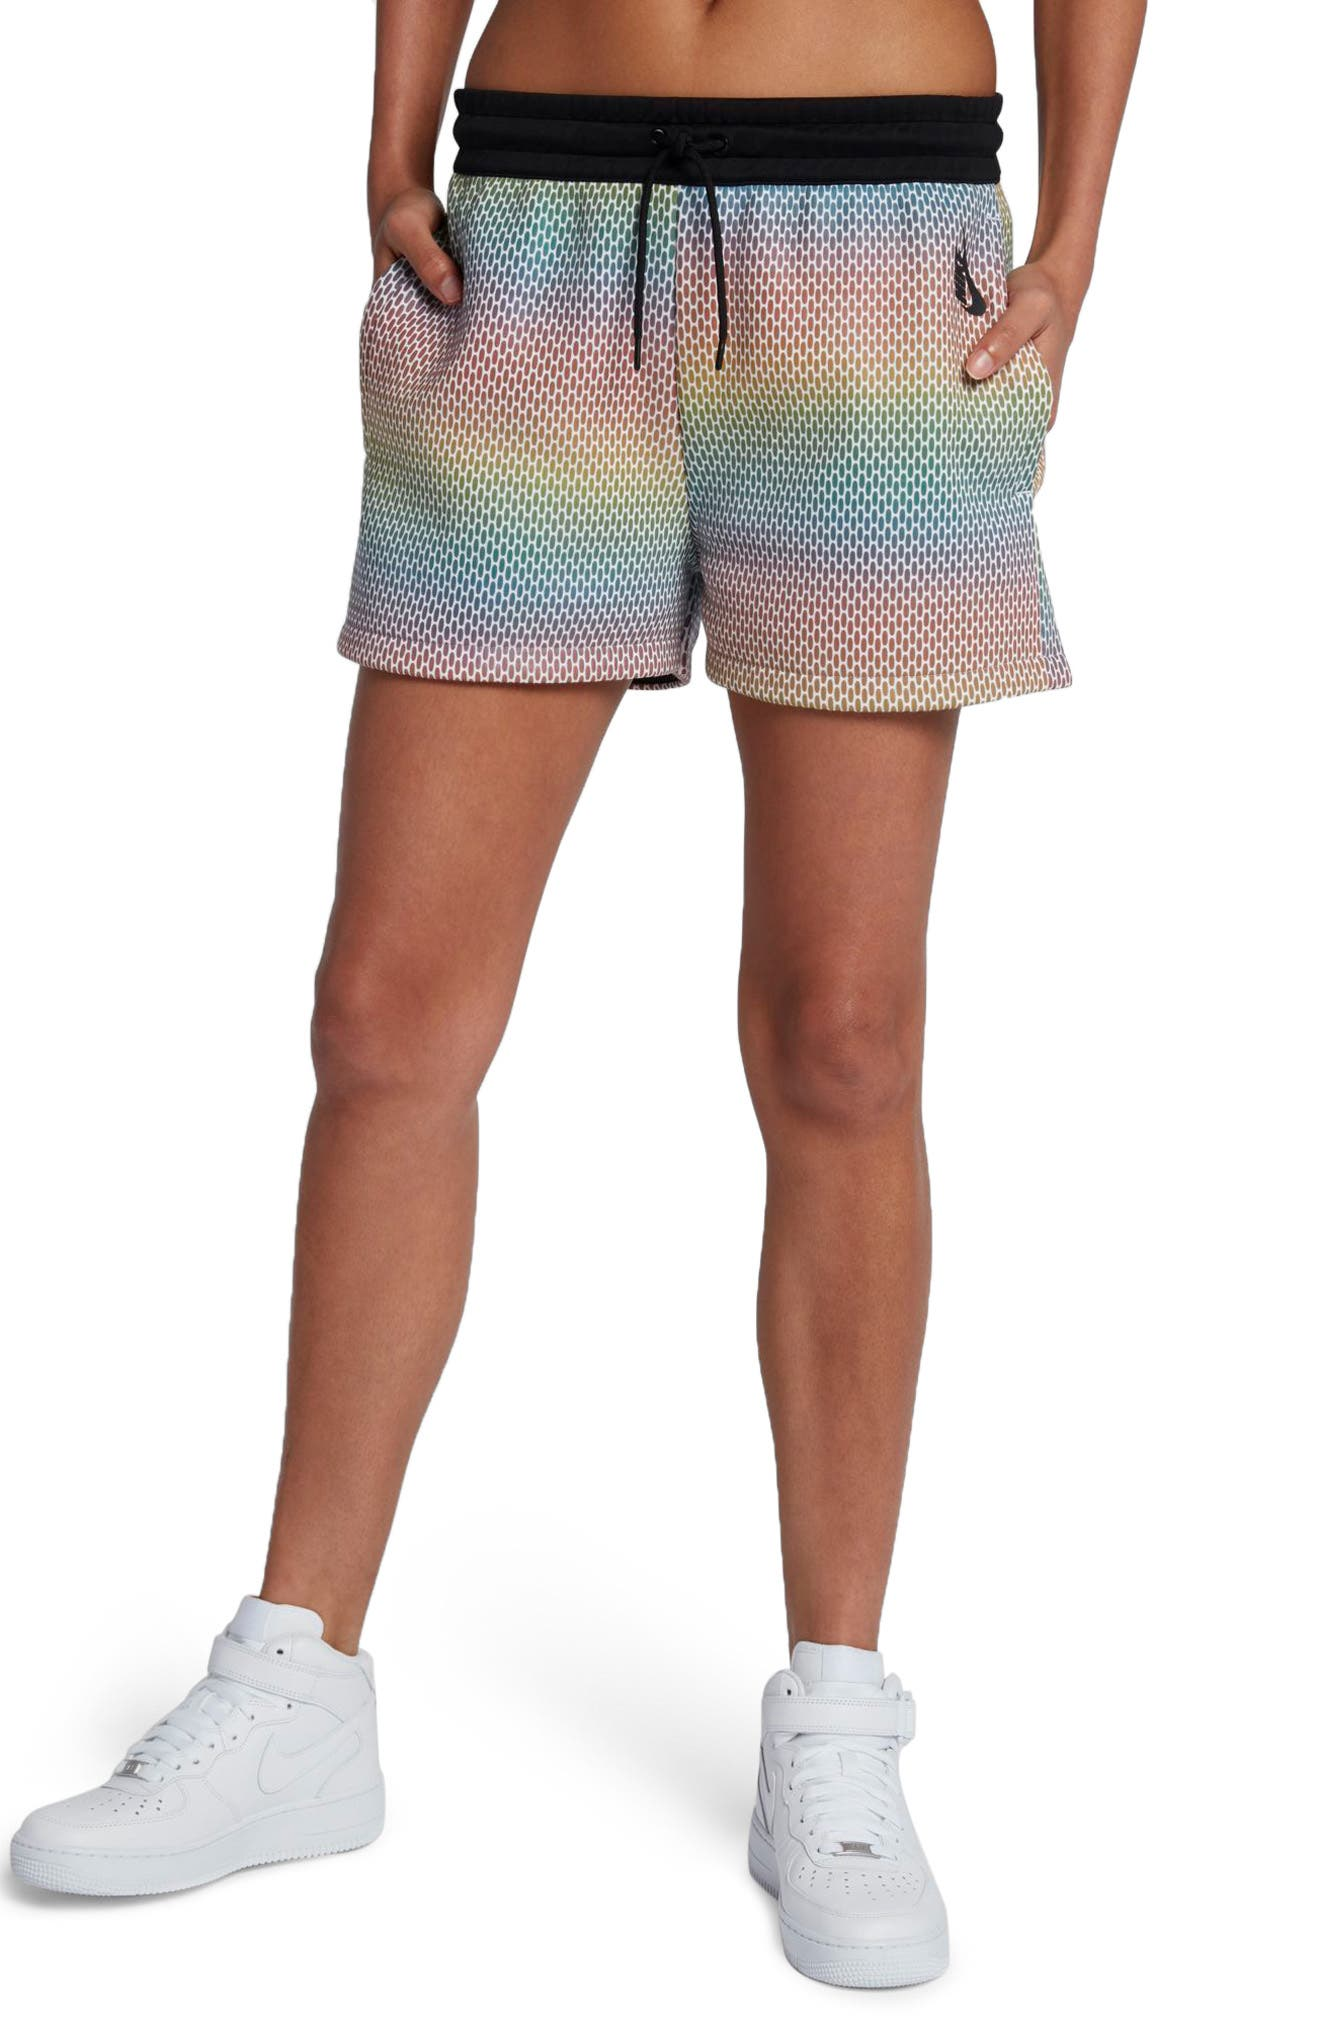 NikeLab Oil Slick Shorts,                         Main,                         color, 100